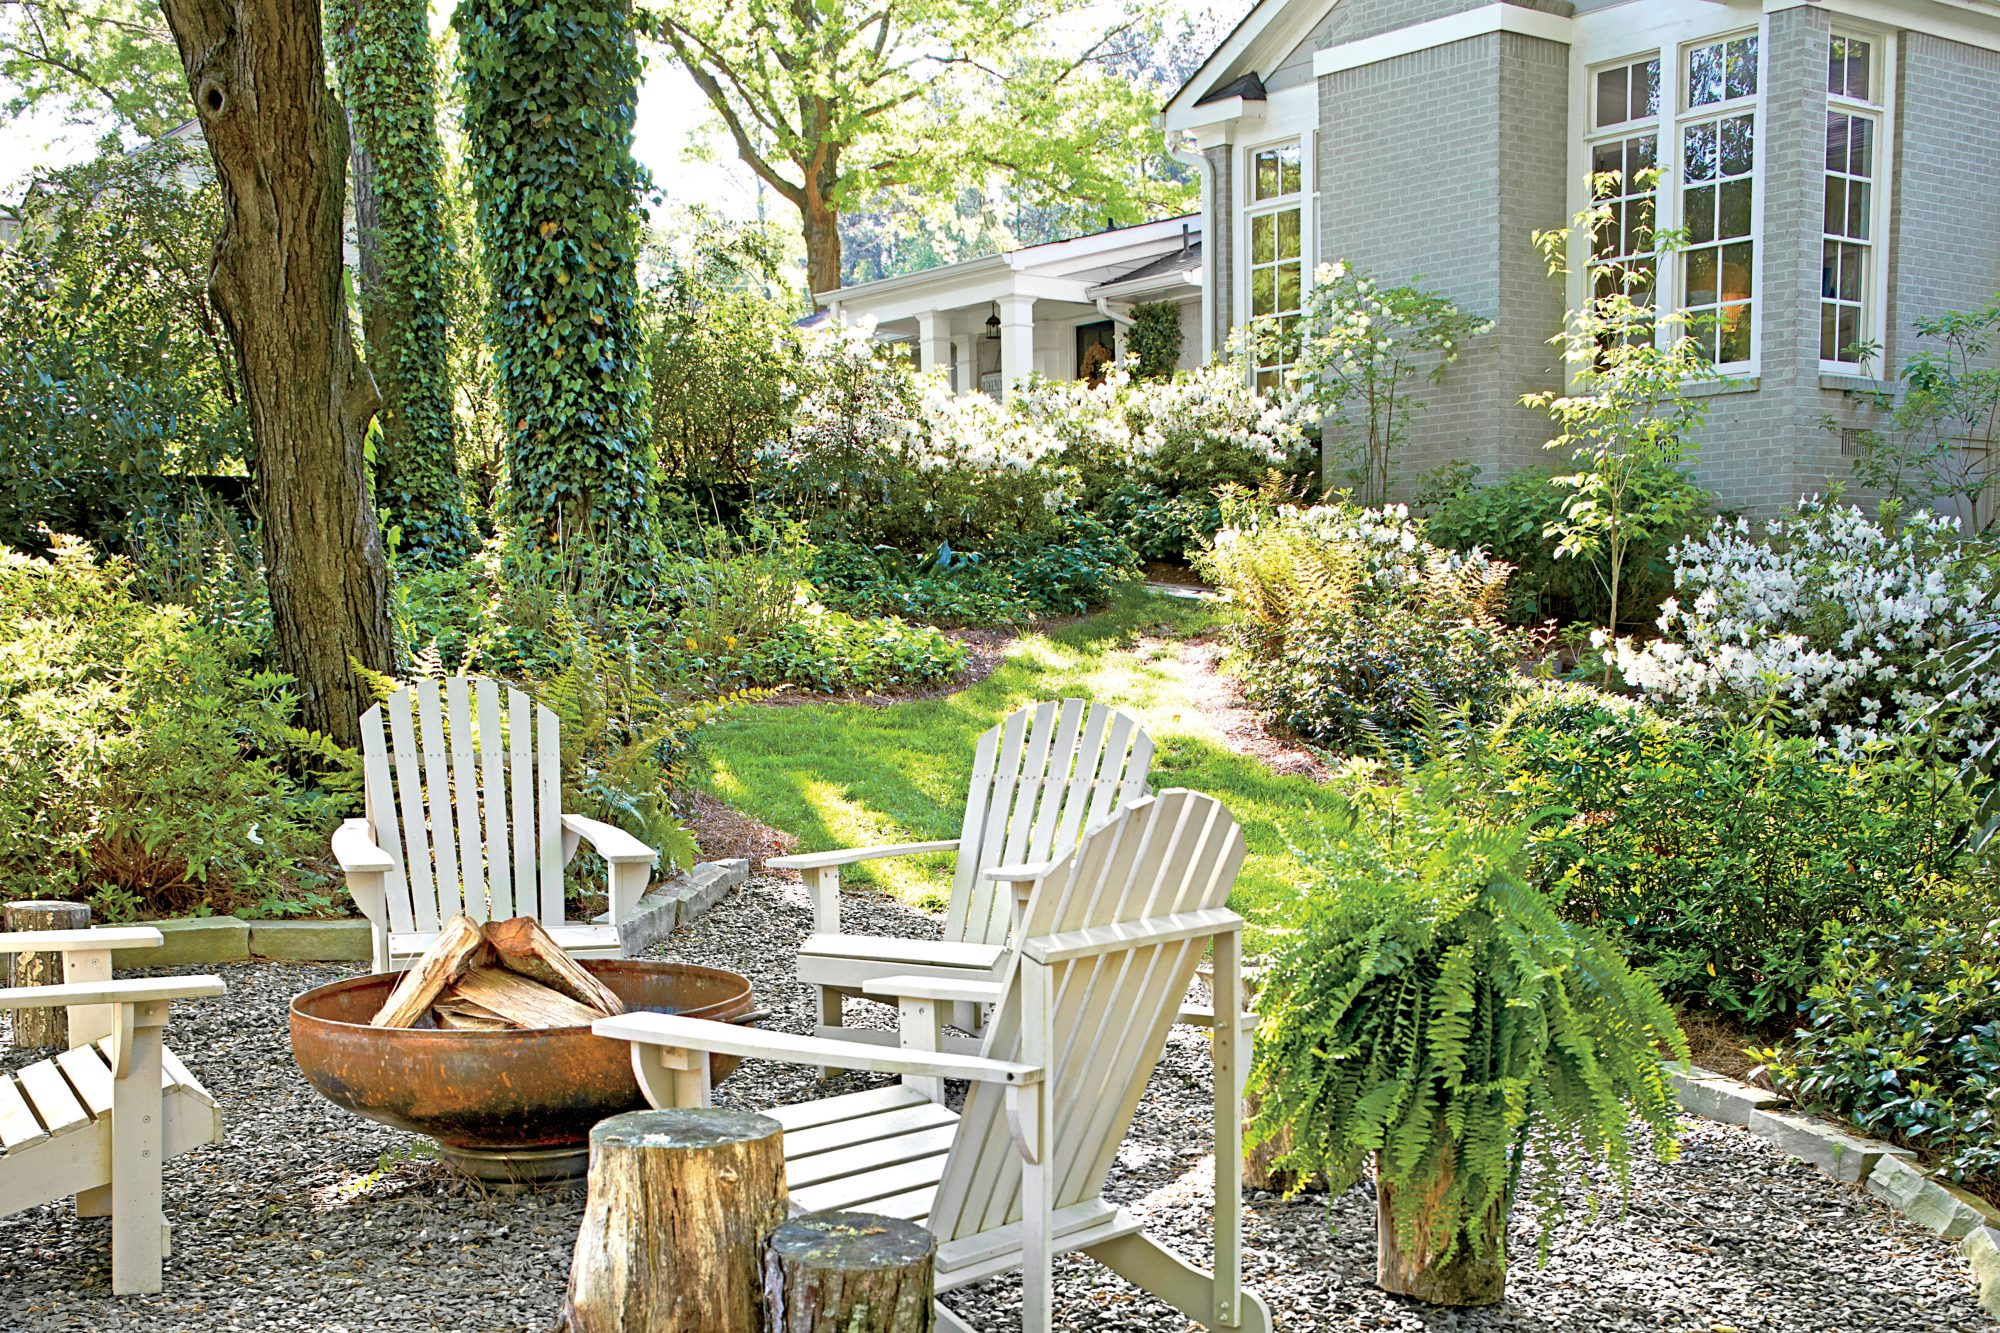 Adirondack Chairs, Gravel Surface, and Fire Pit Backyard